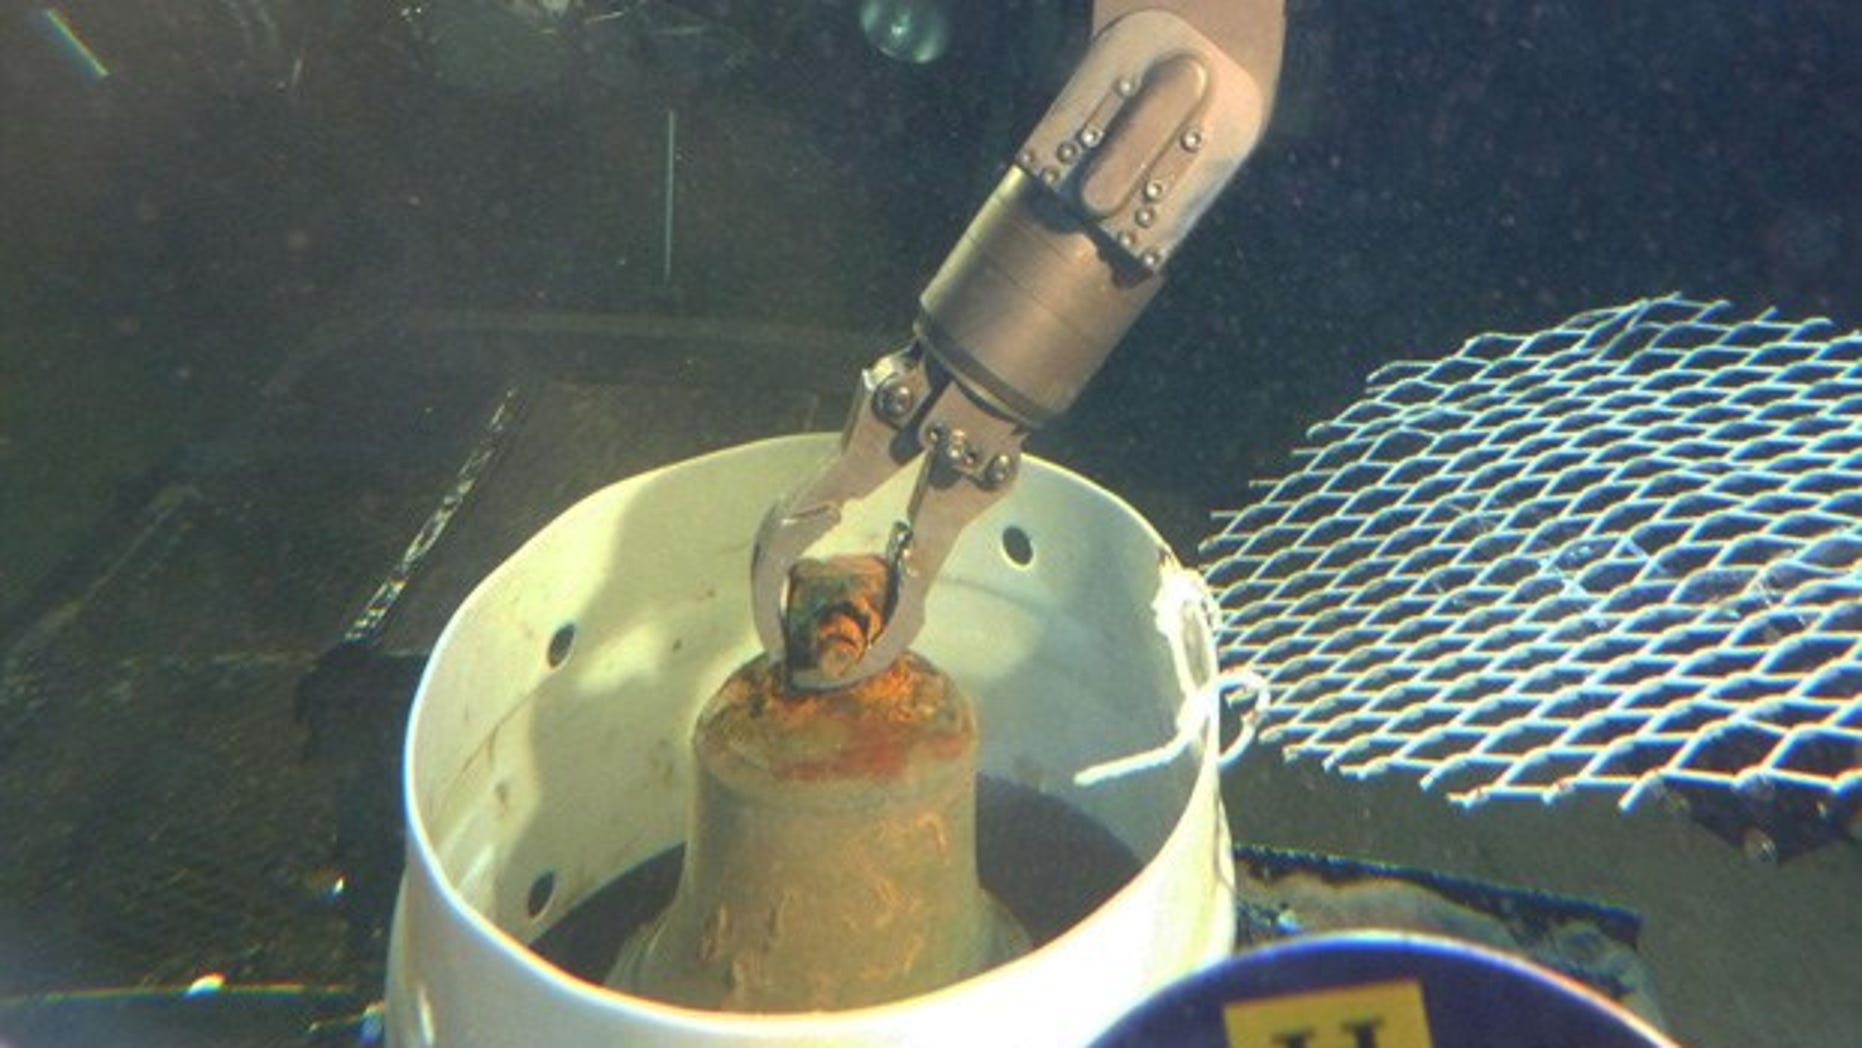 Manipulator arm of HURL's submersible places the I-400 bell into a collection basket. (HURL/UH)